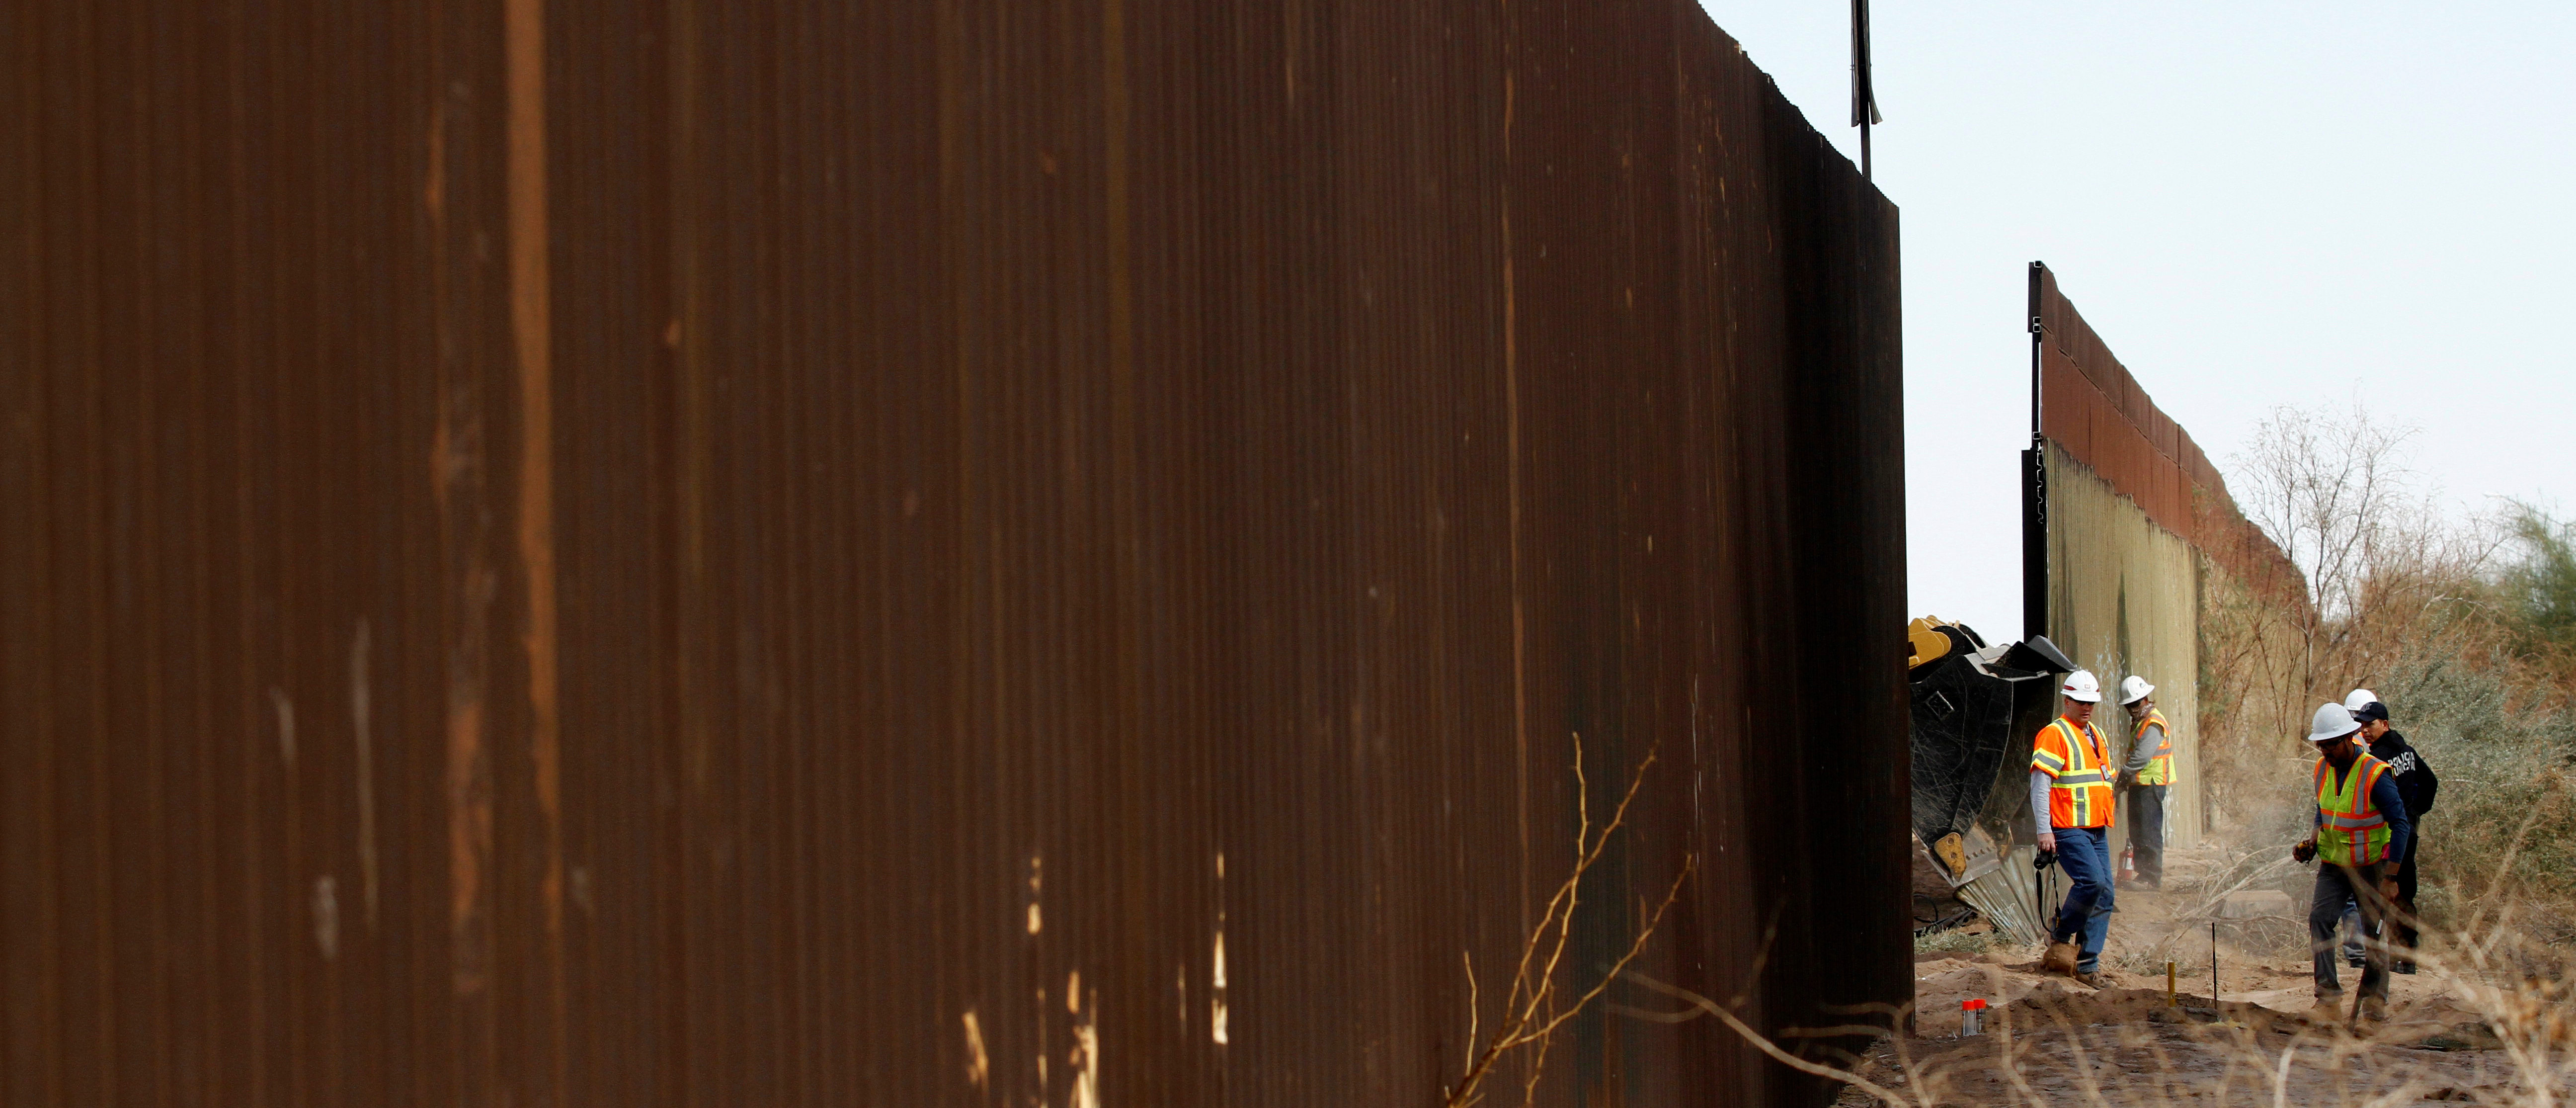 U.S. Customs and Border Protection replace a 2.25-mile section of US-Mexico border with new wall construction near Calexico, California, U.S, as seen from Mexicali